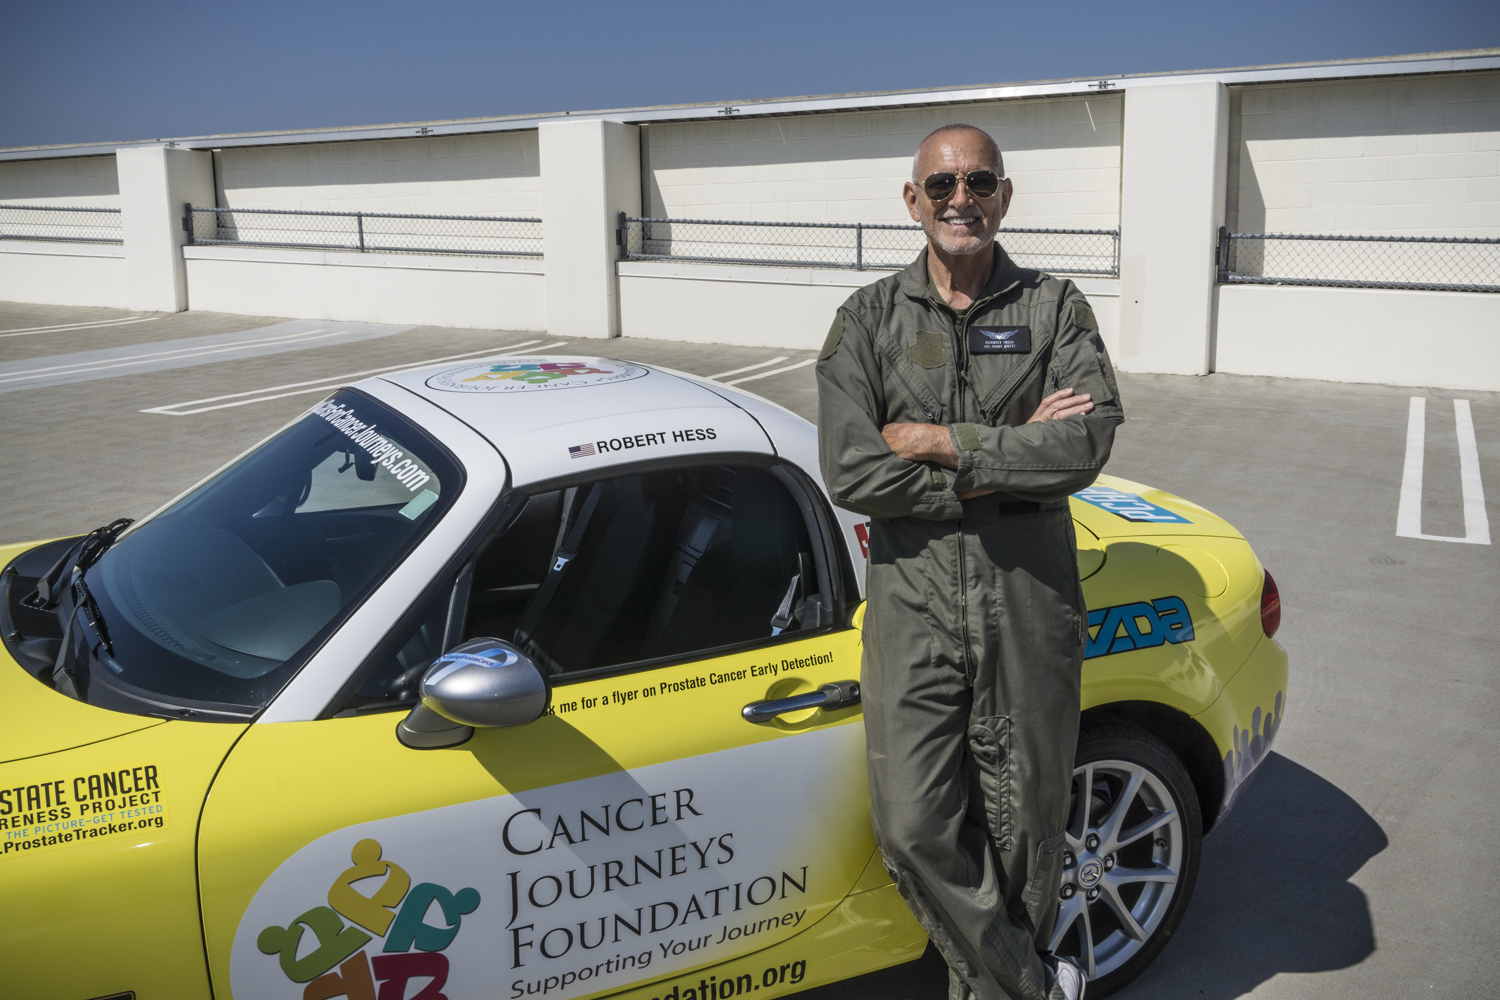 Cancer Journeys Foundation President Robert Hess